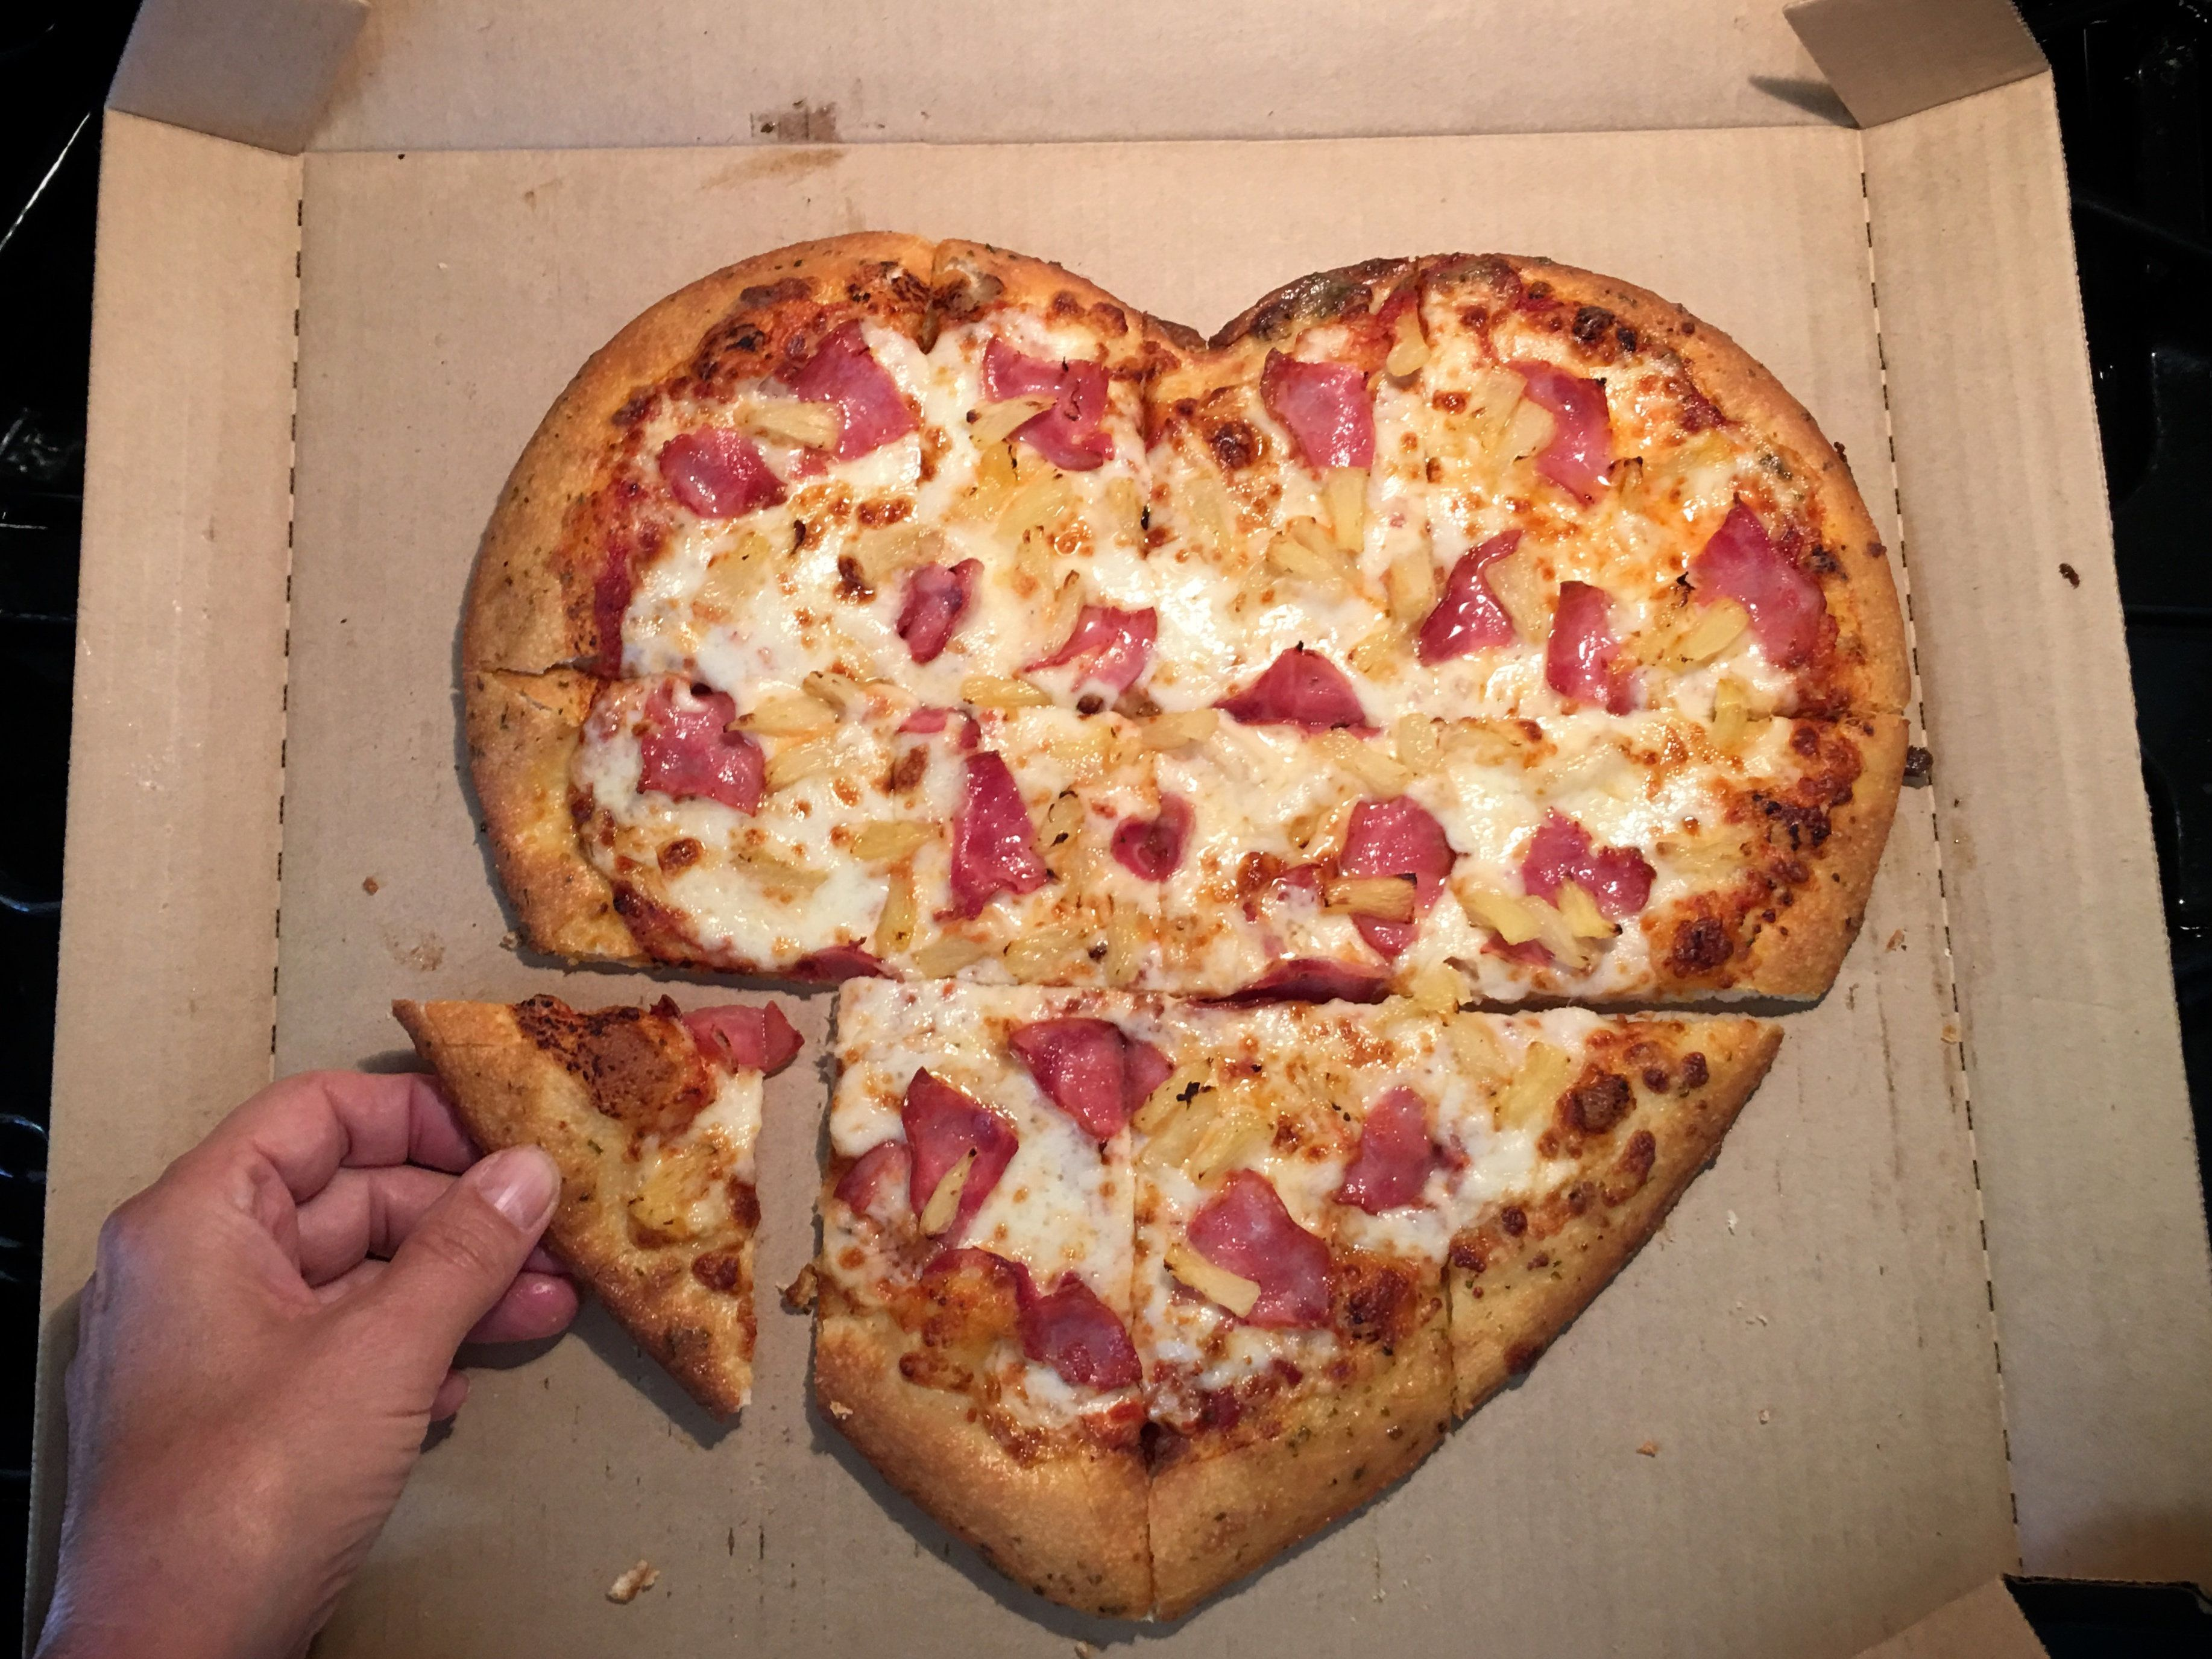 Eating a Hawaiian heart-shaped pizza with Canadian bacon and pineapple.